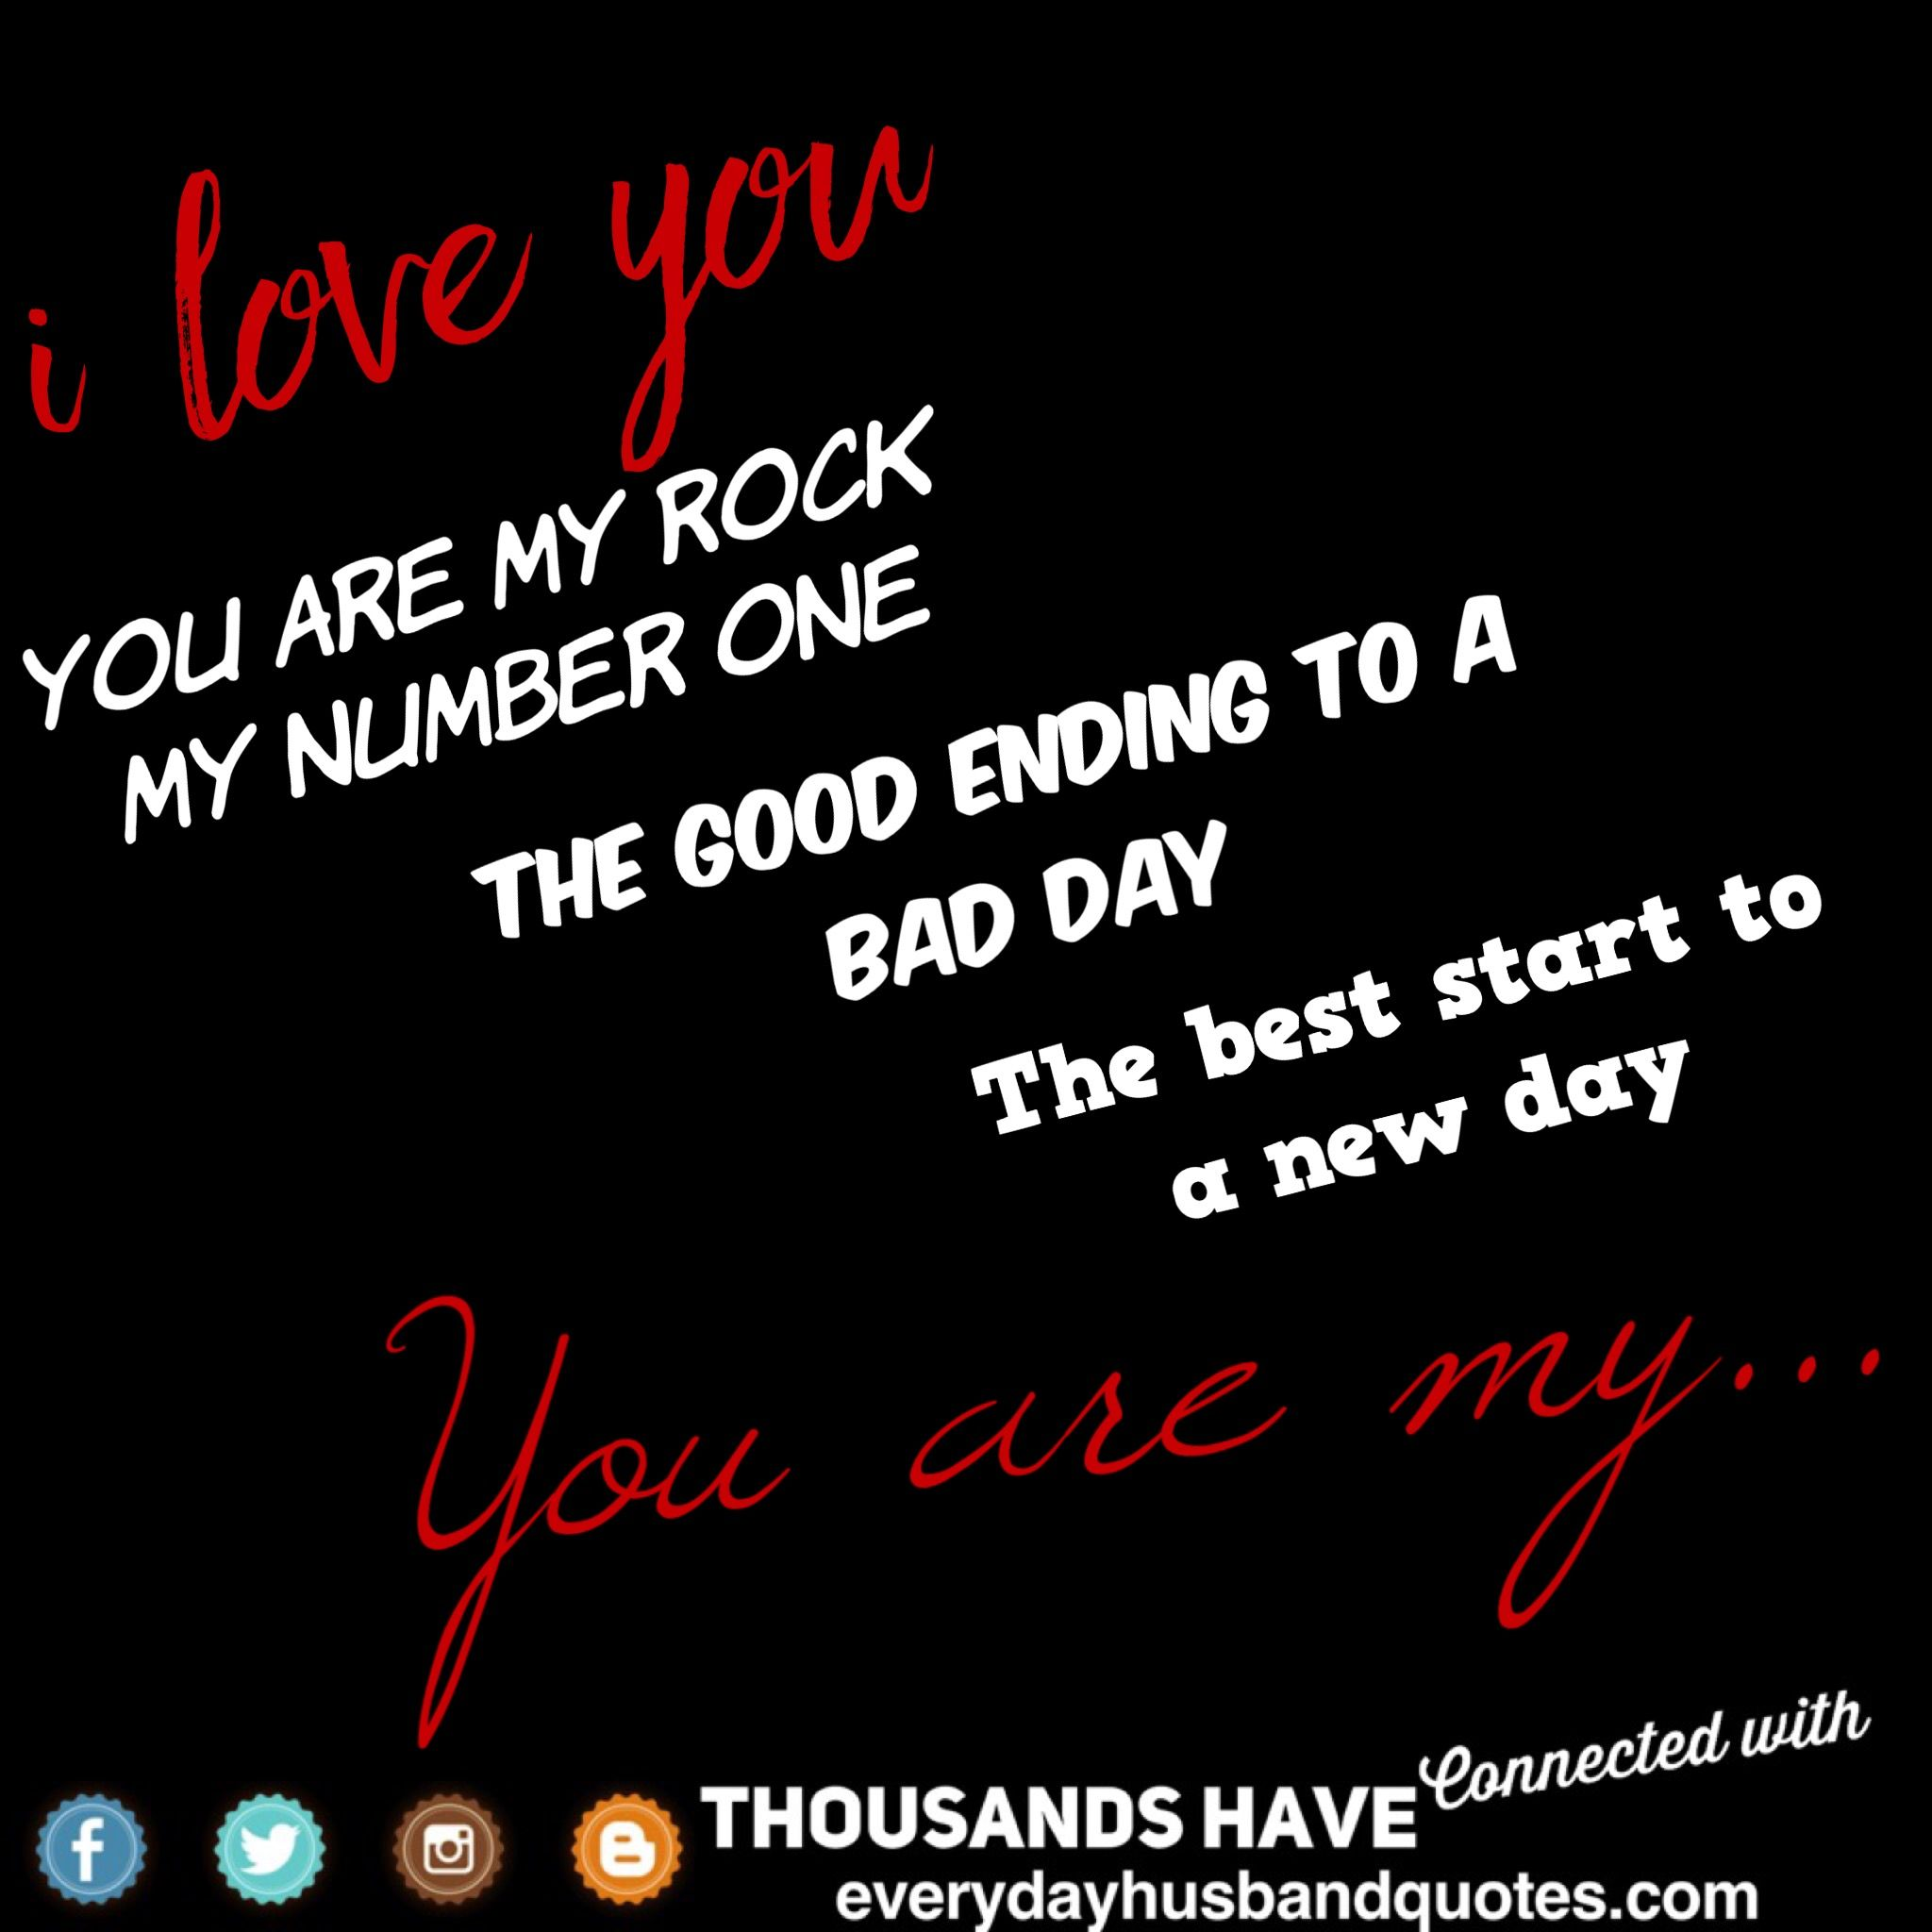 I Love My Husband Quotes Love You Husband Quote I Love Youyou Are My Rock My Number One